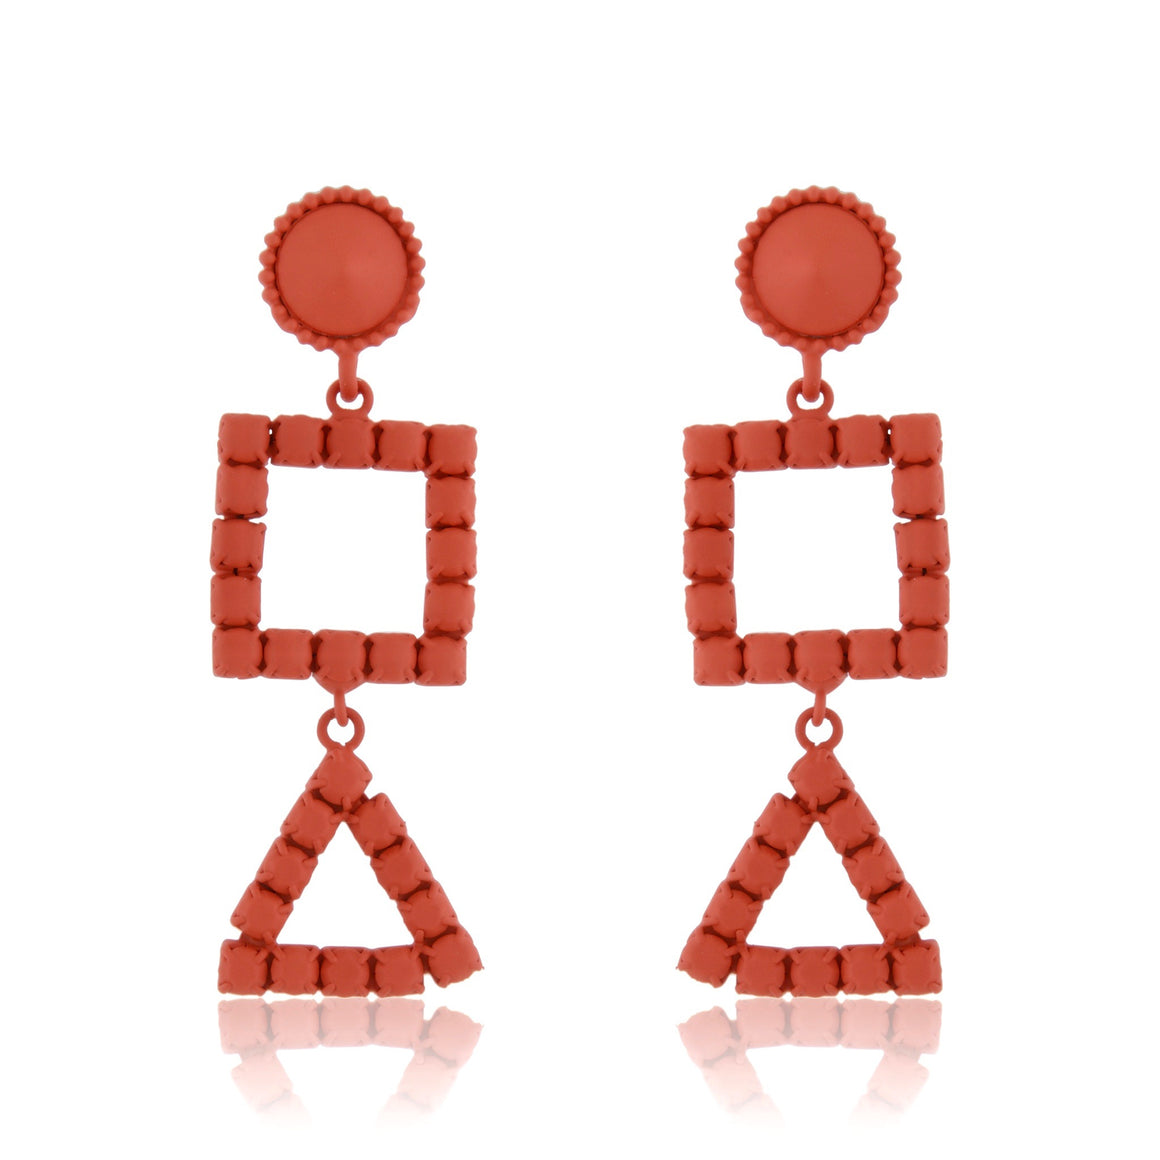 3D Geometry  Earrings - Tomato Red